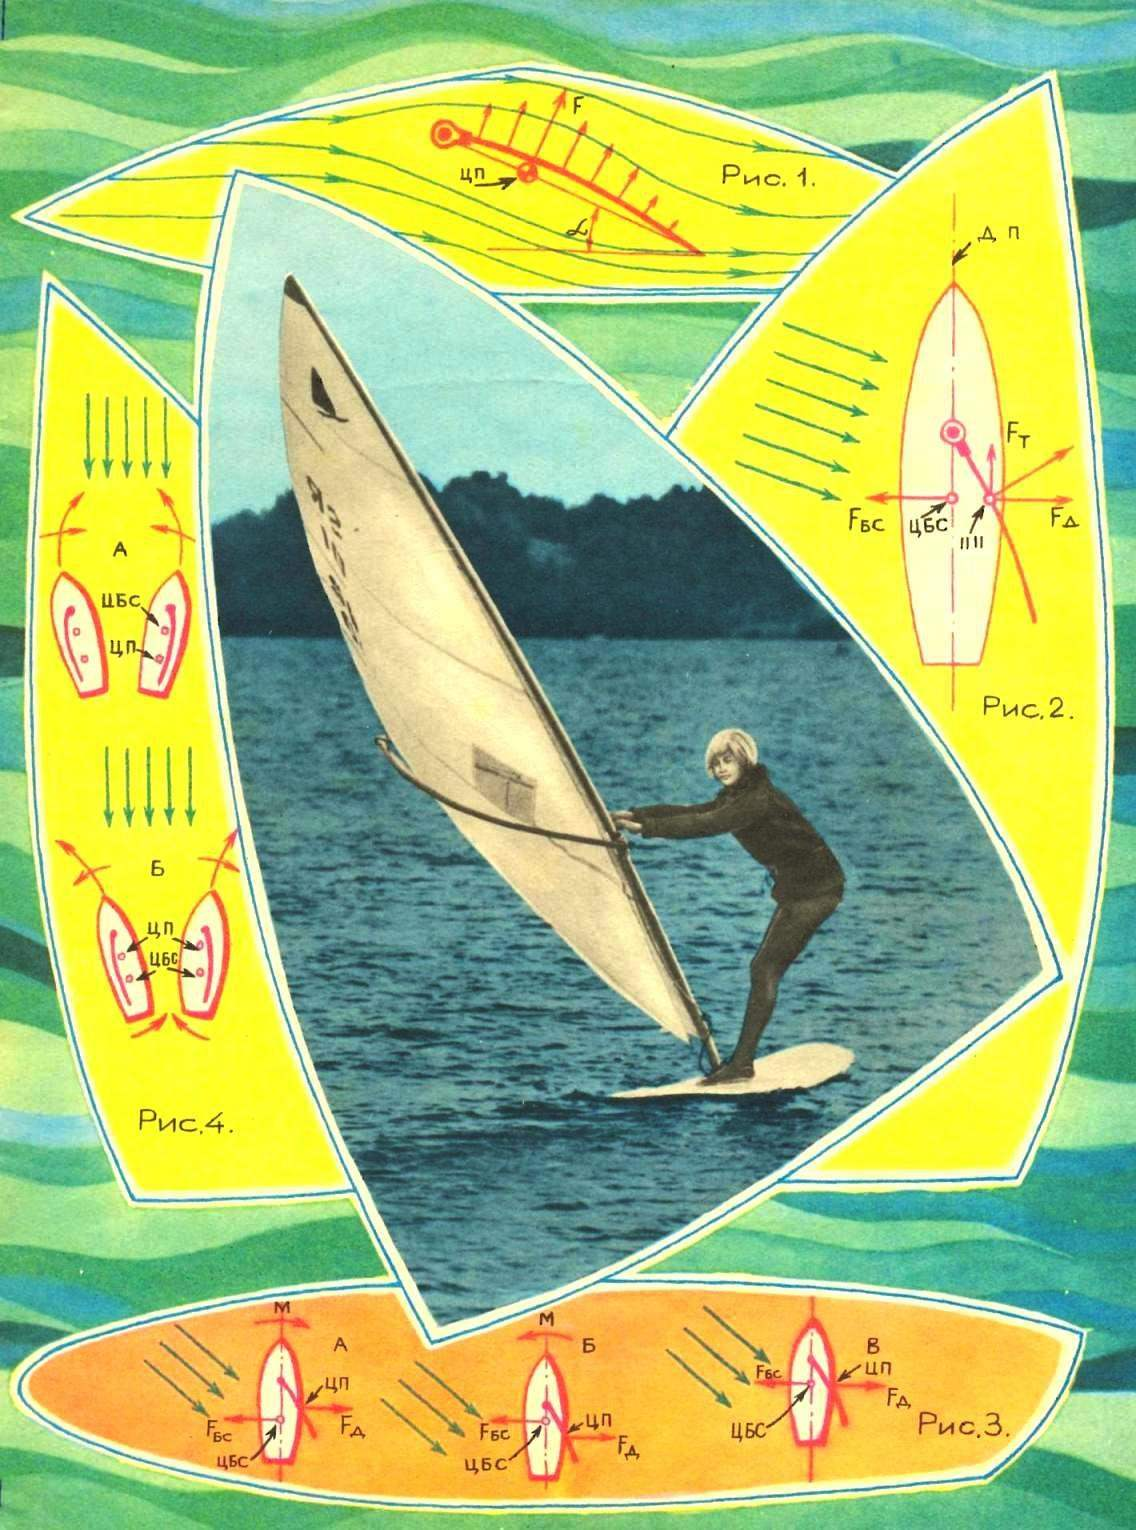 WINDSURFING: A LITTLE THEORY